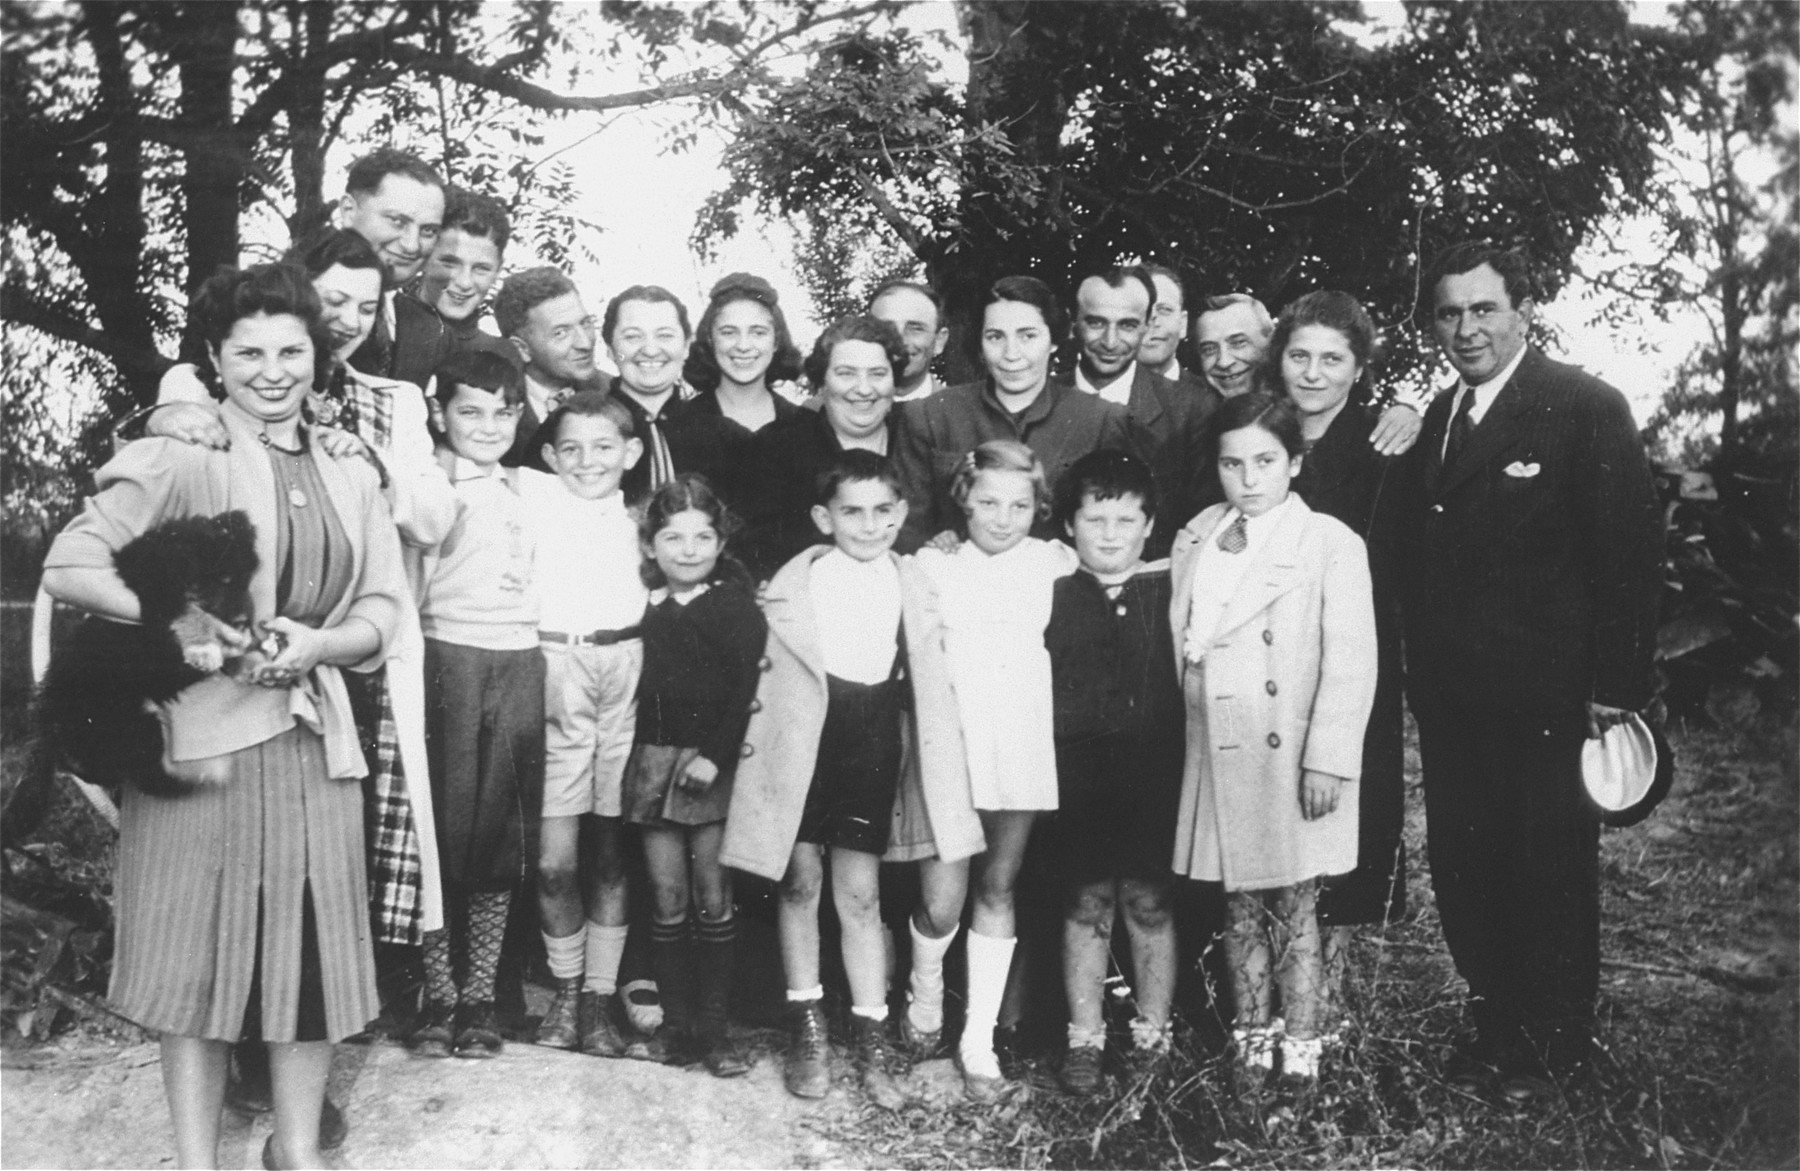 Group portrait taken on the eve of Rosh Hashana, of a number of Slovak and Hungarian-Jewish refugee families who had recently settled on farms in southern Ontario.  Among the families pictured are Leslie and Stephie Weisz, Lajos and Magda Muller, and Nandor and Magda Muller.